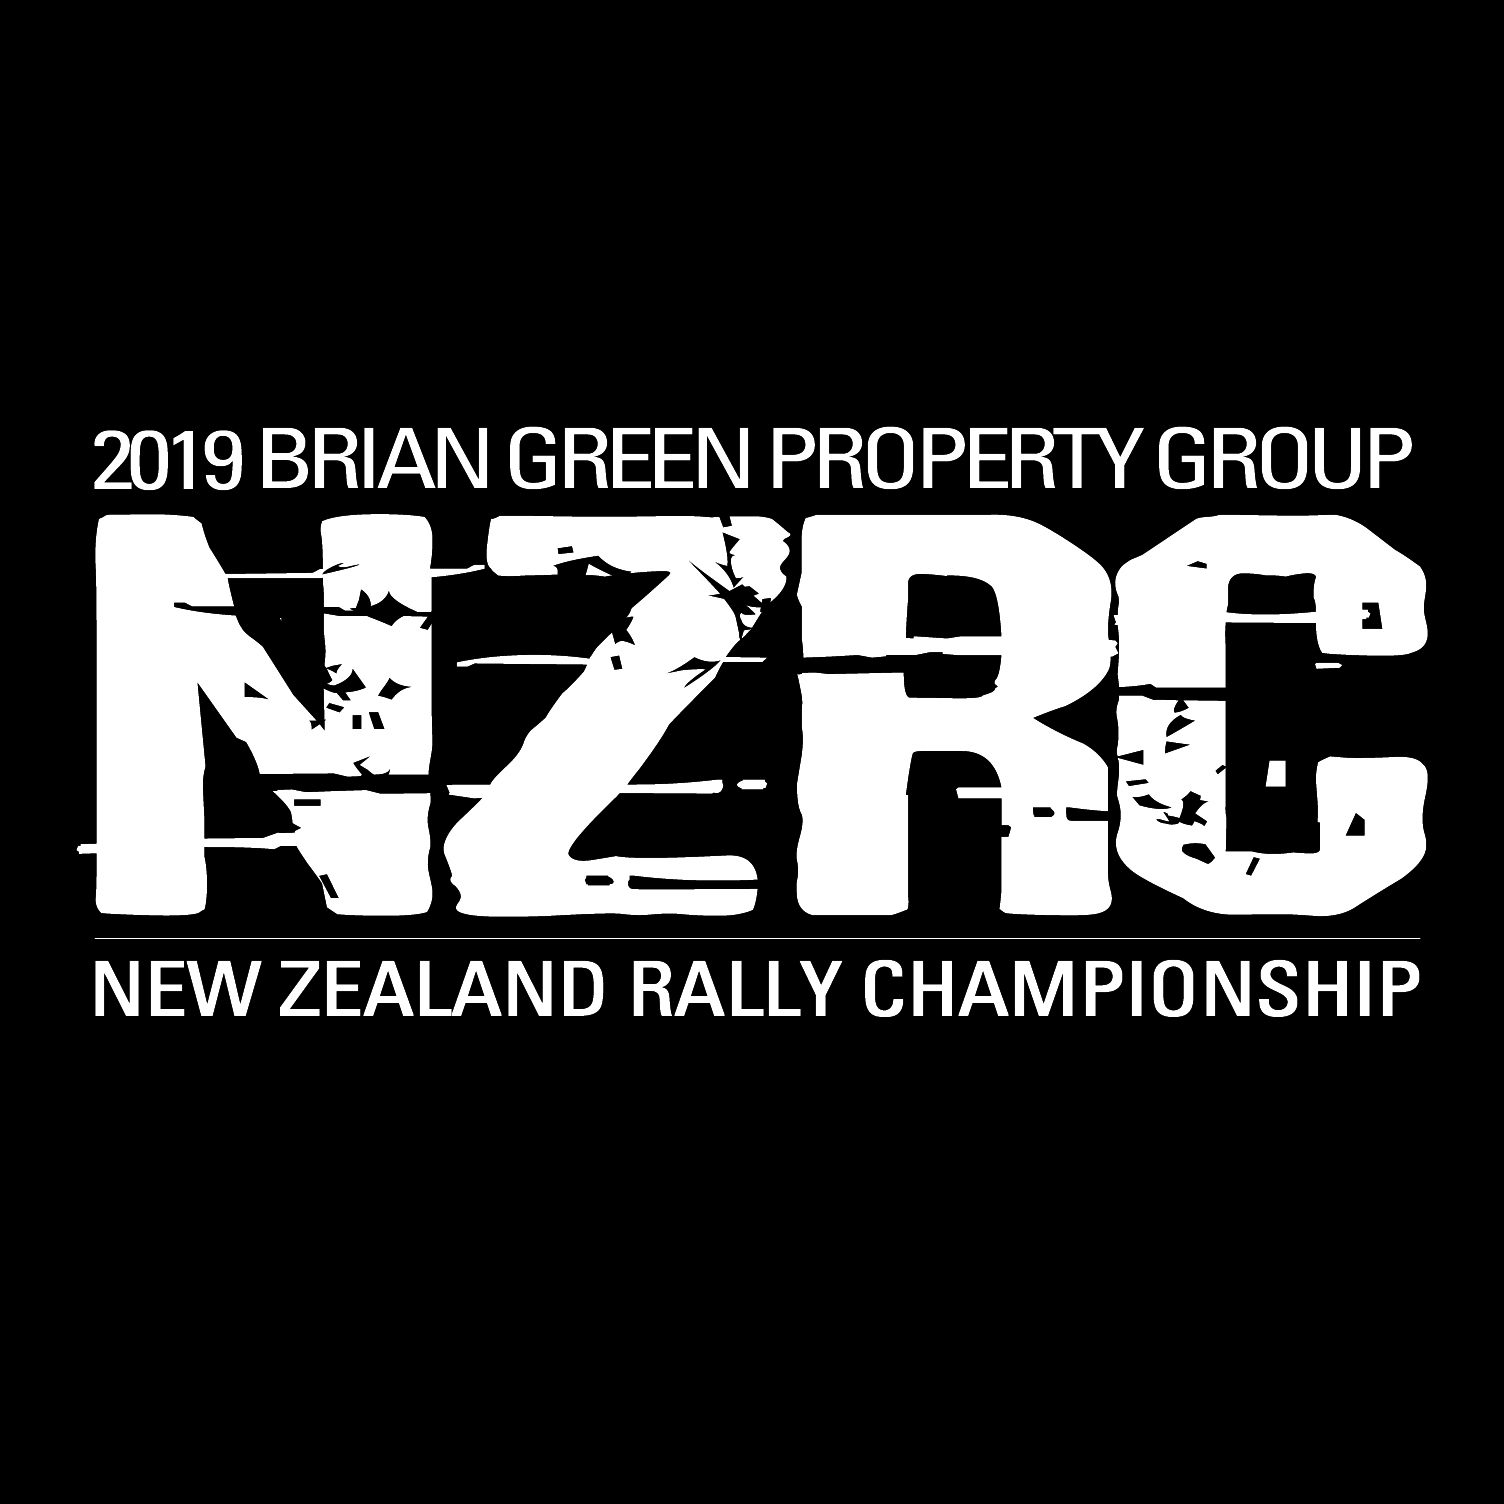 Cunningham progresses at Gisborne | :: Brian Green Property Group New Zealand Rally Championship ::